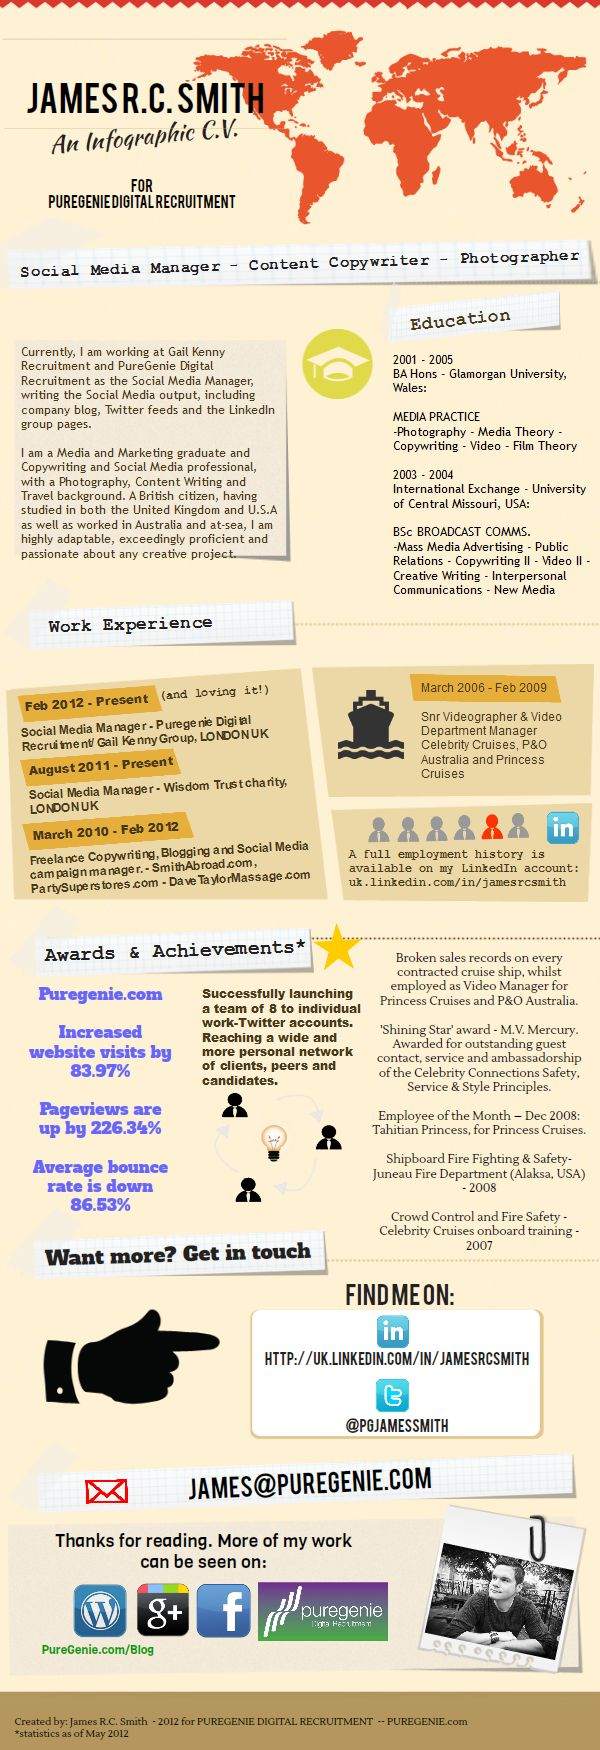 41 best CV images on Pinterest | Career, Cv template and Resume